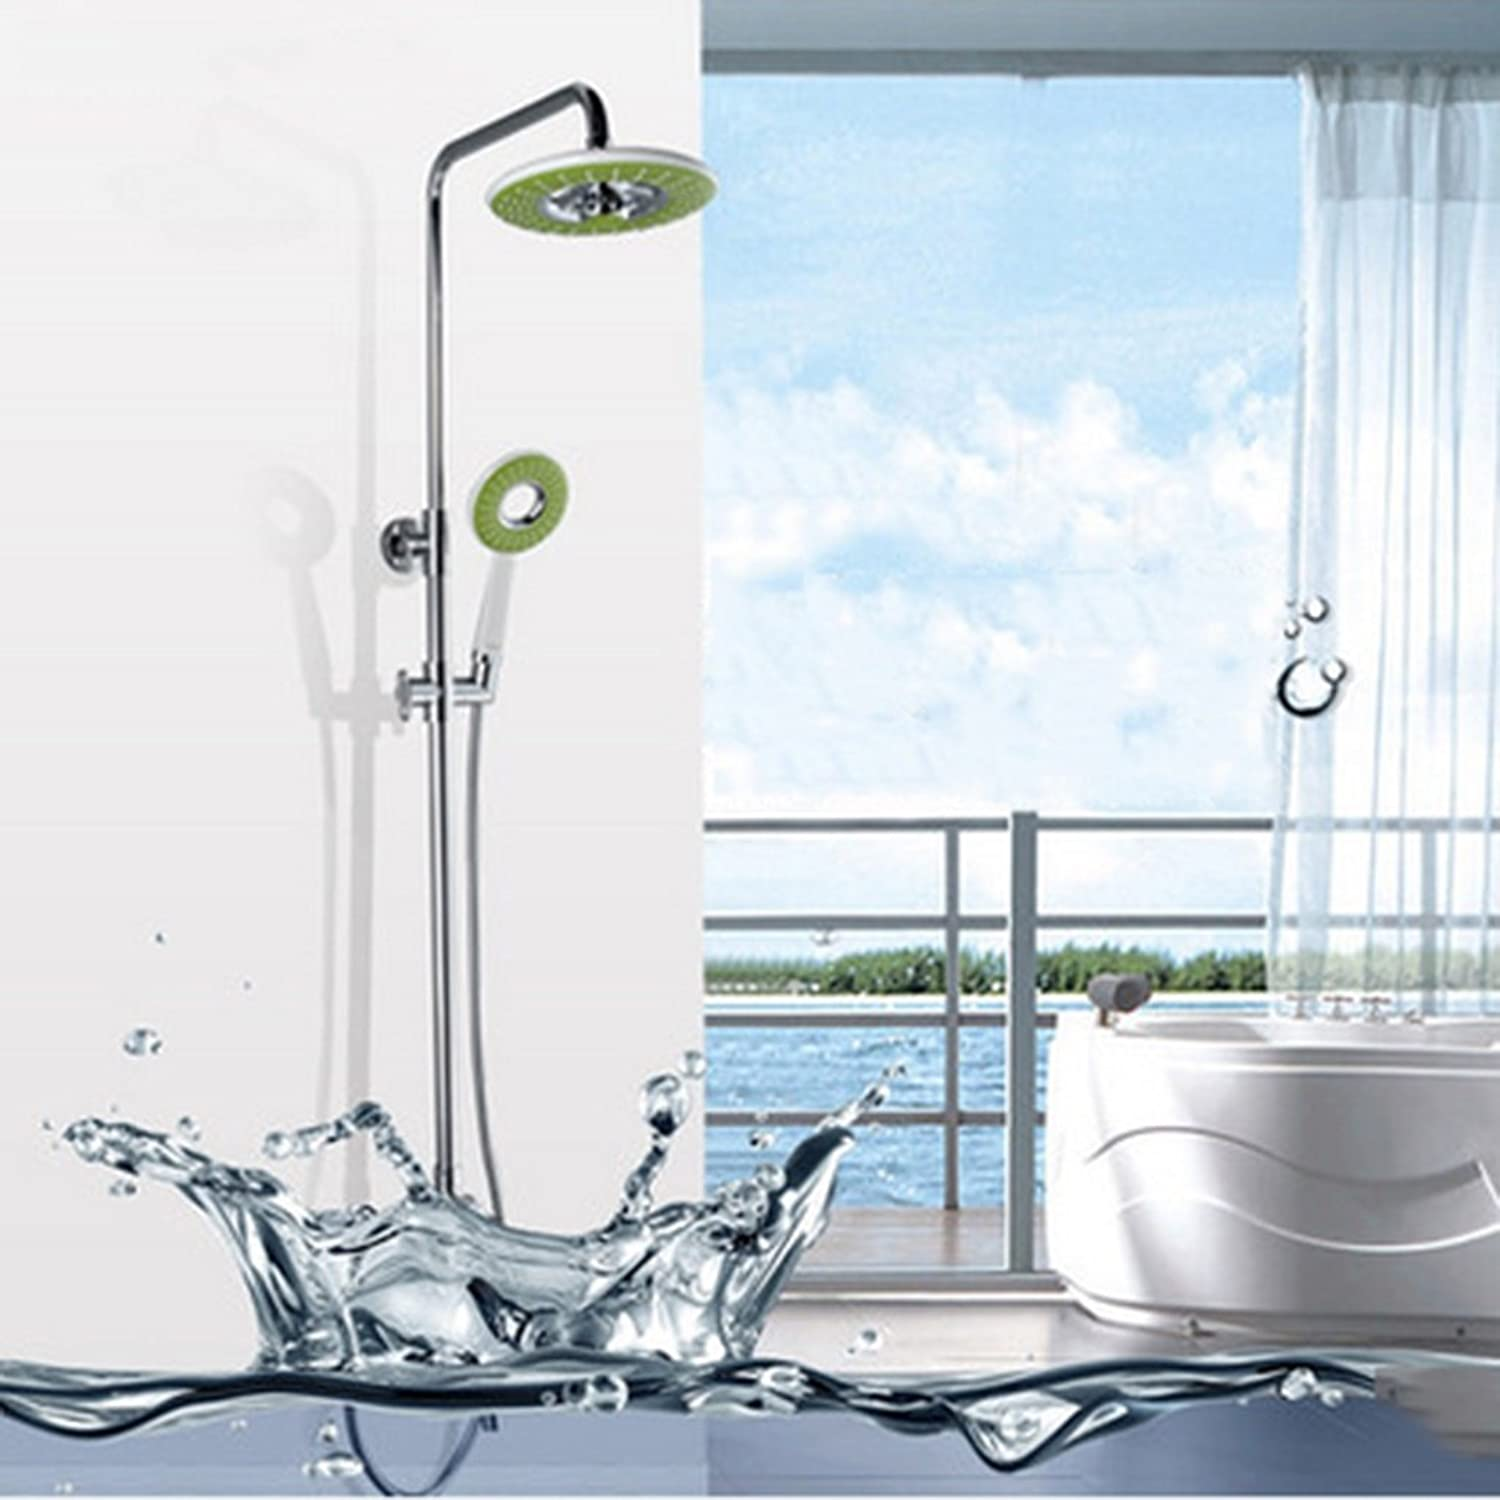 Cqq Bathroom shower Brass bathroom Shower set bathroom Simple pressurized nozzle can be lifted faucet shower Device